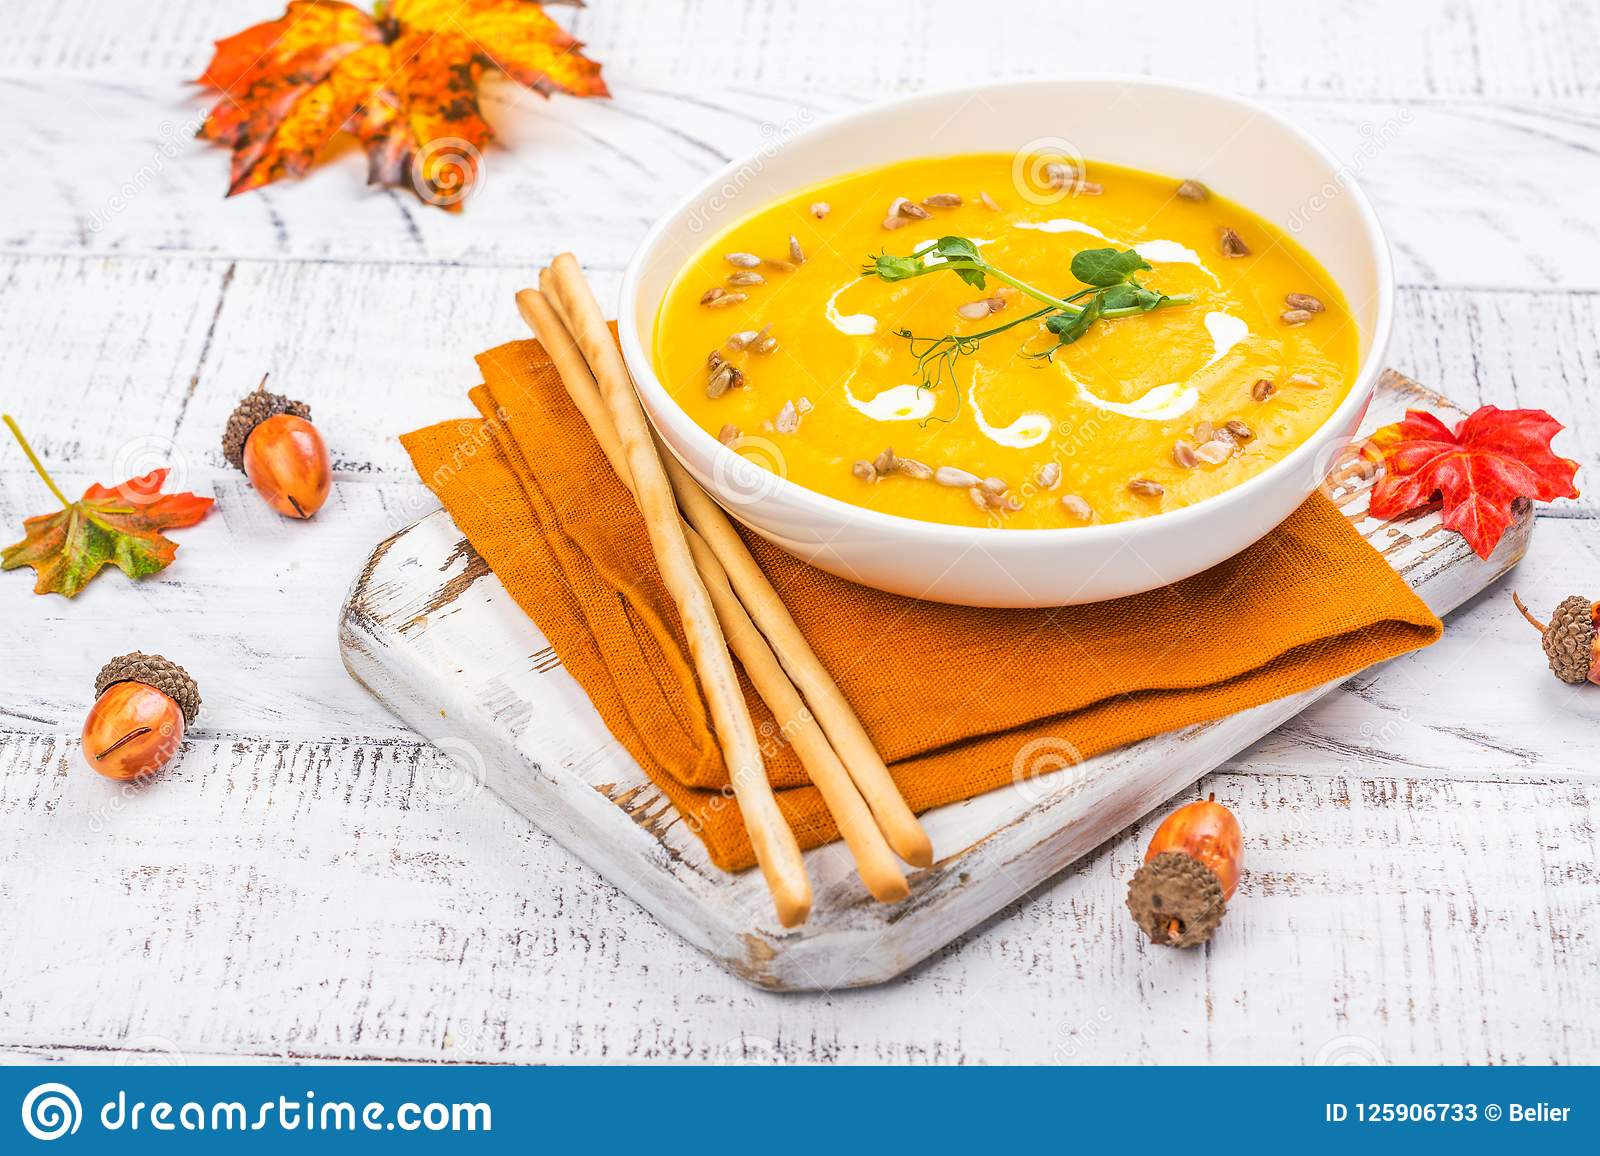 Pumpkin Soup On Autumn Background Stock Image - Image of cream, seed